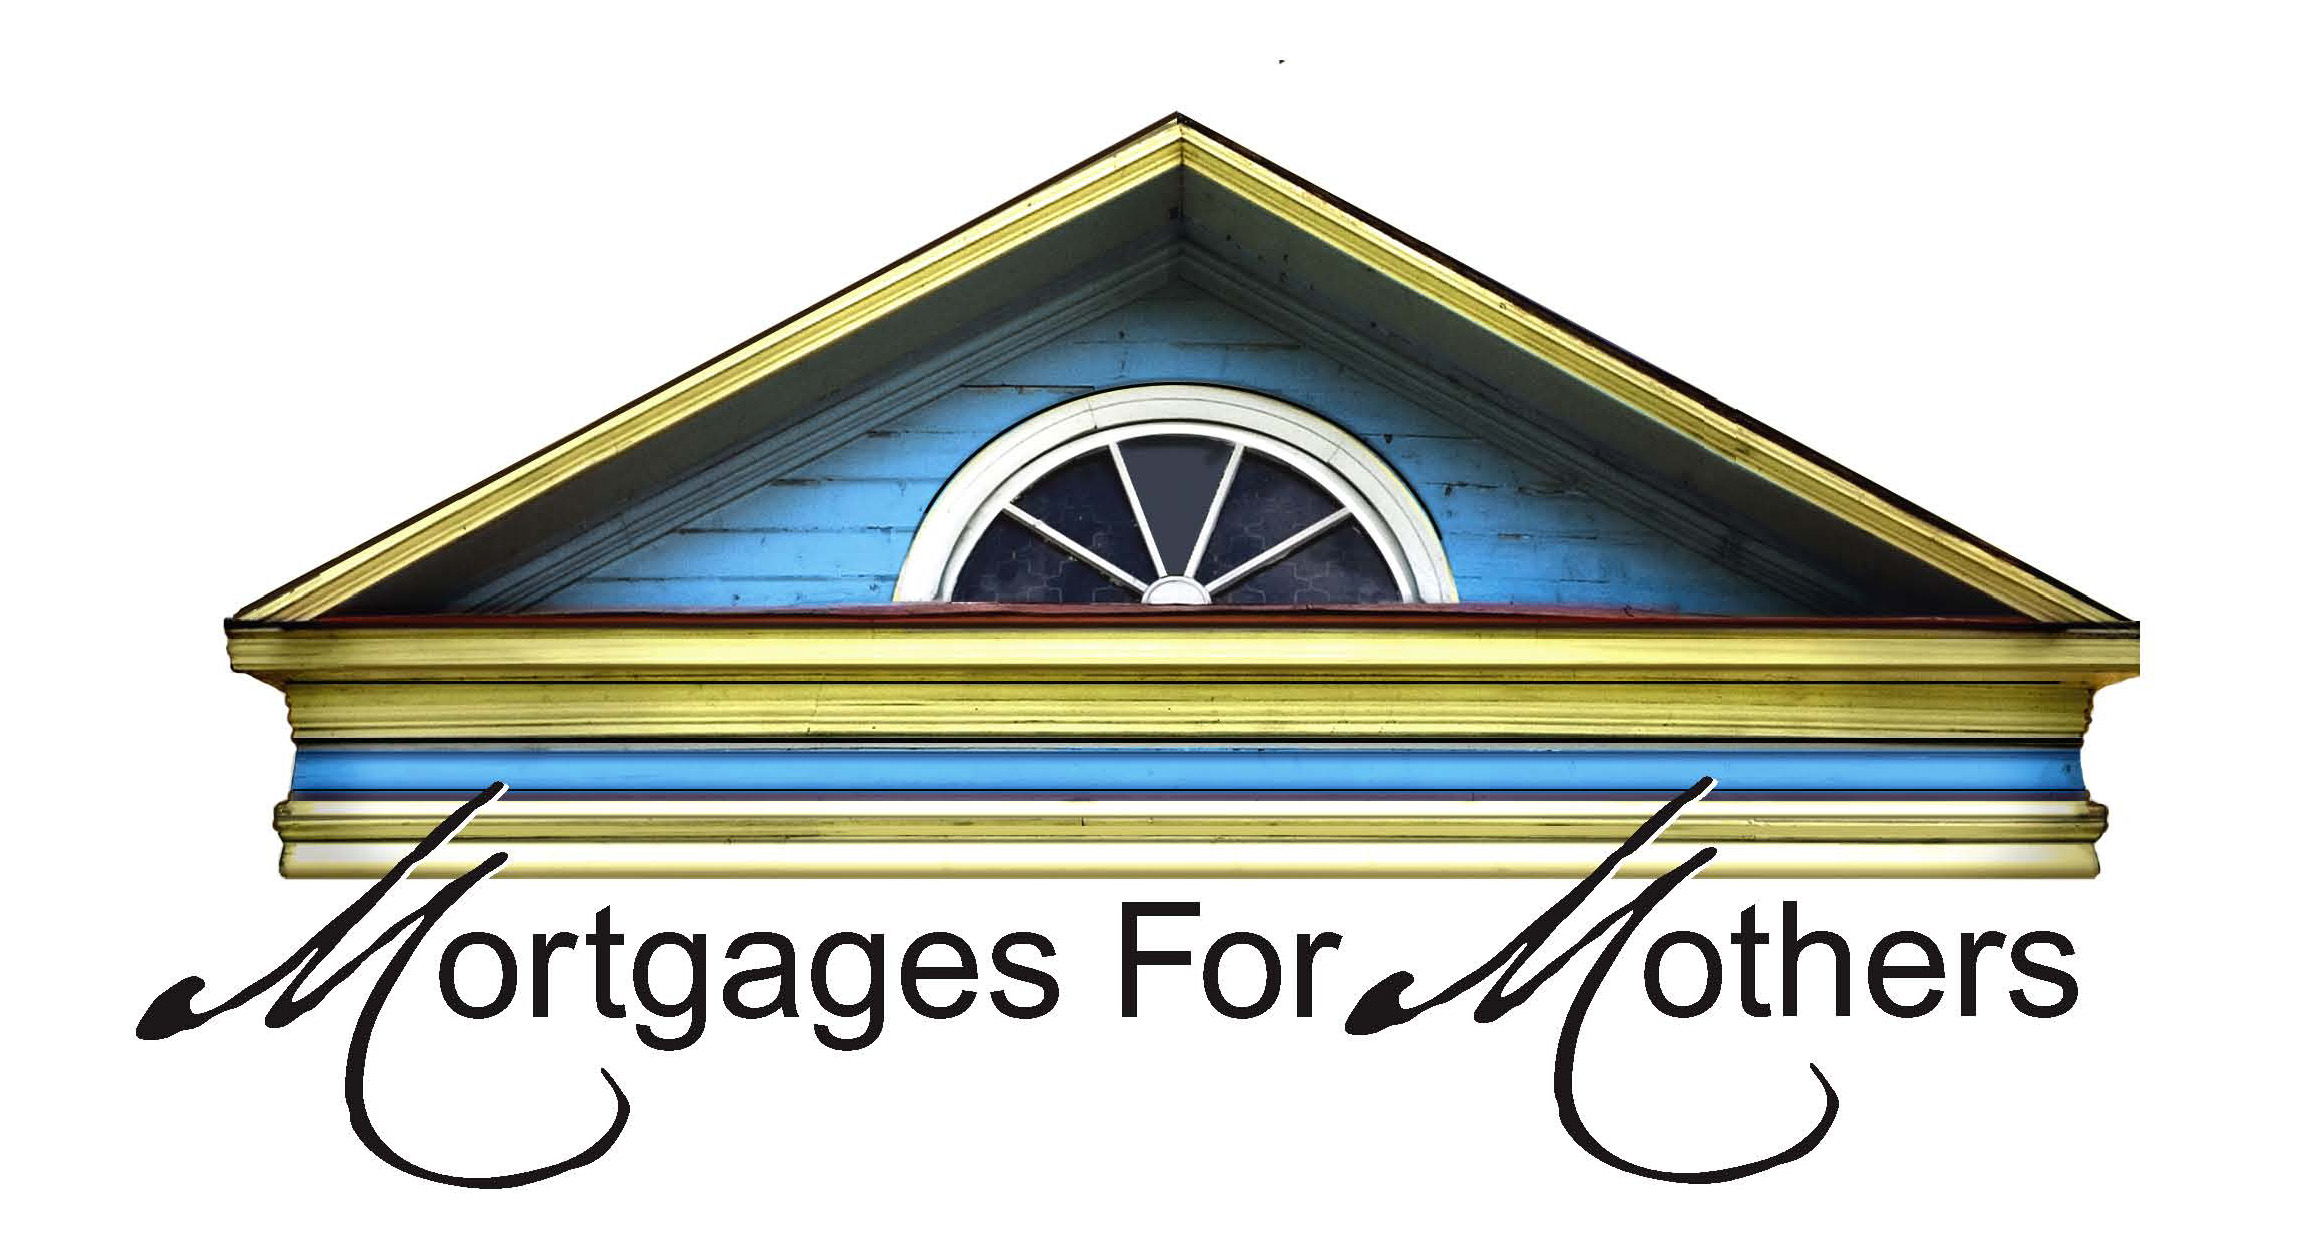 Mortgages For Mothers